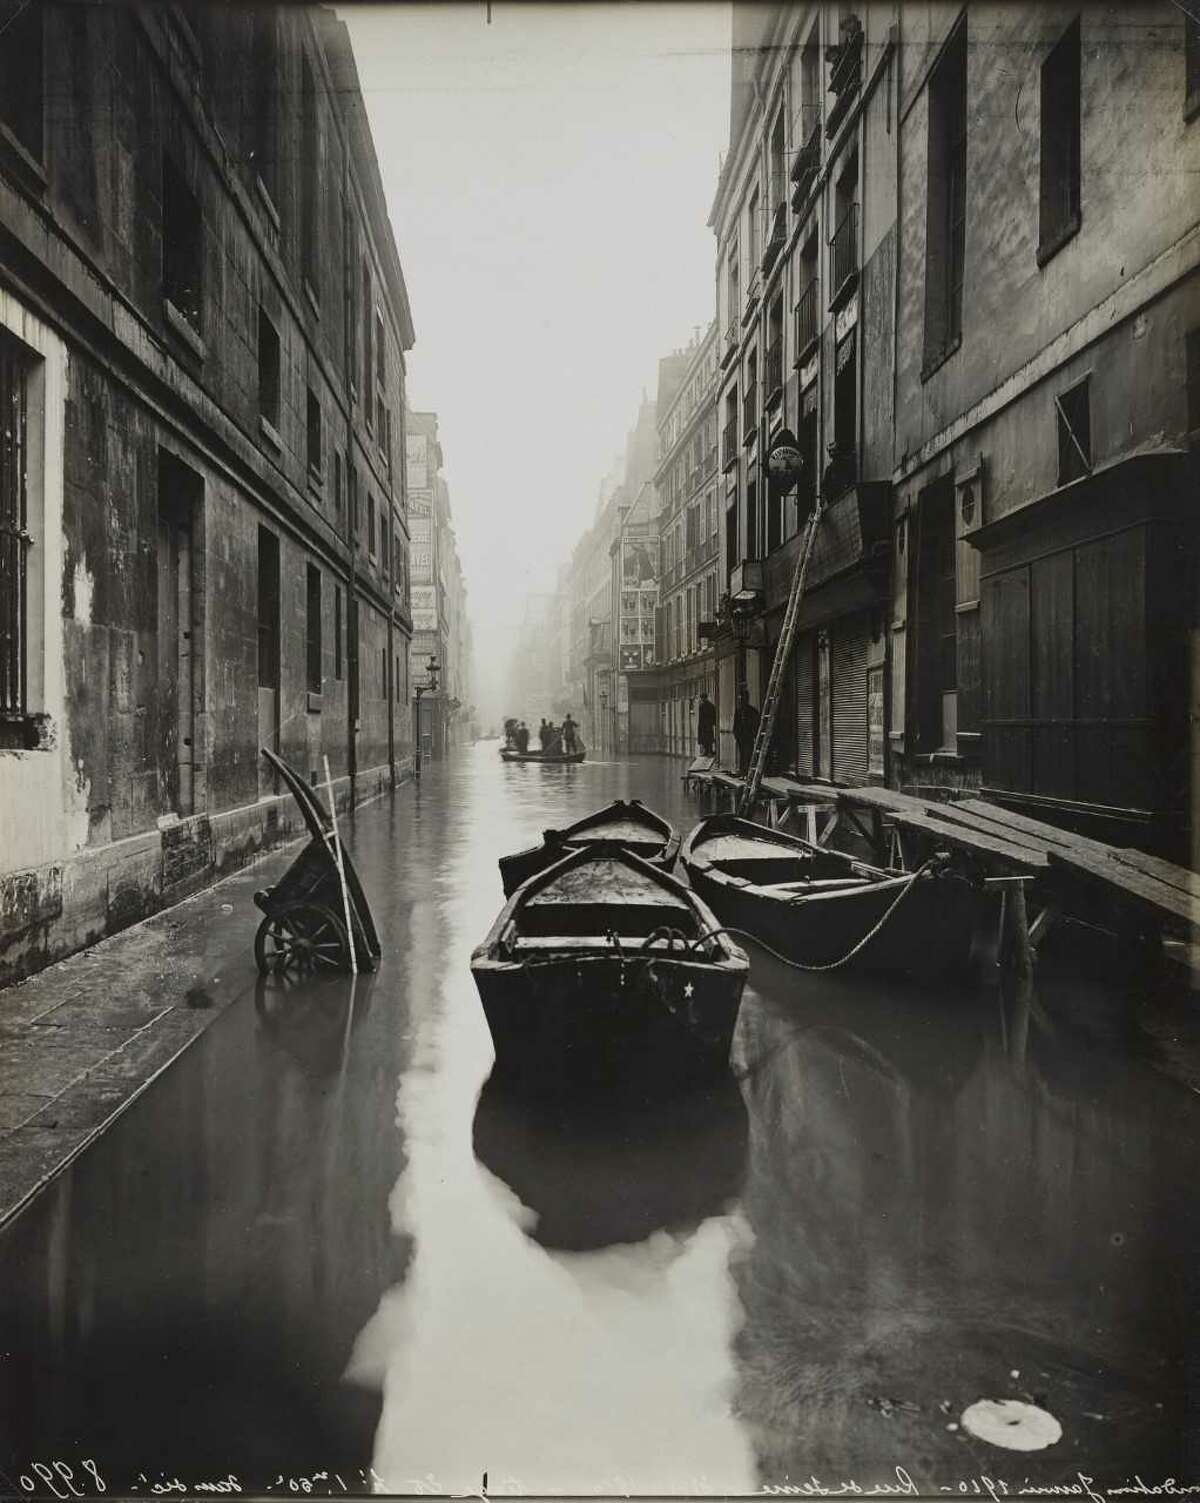 """Unknown """"Paris Flood - 1910 Street with Boats and Cart."""" Gelatin silver print"""